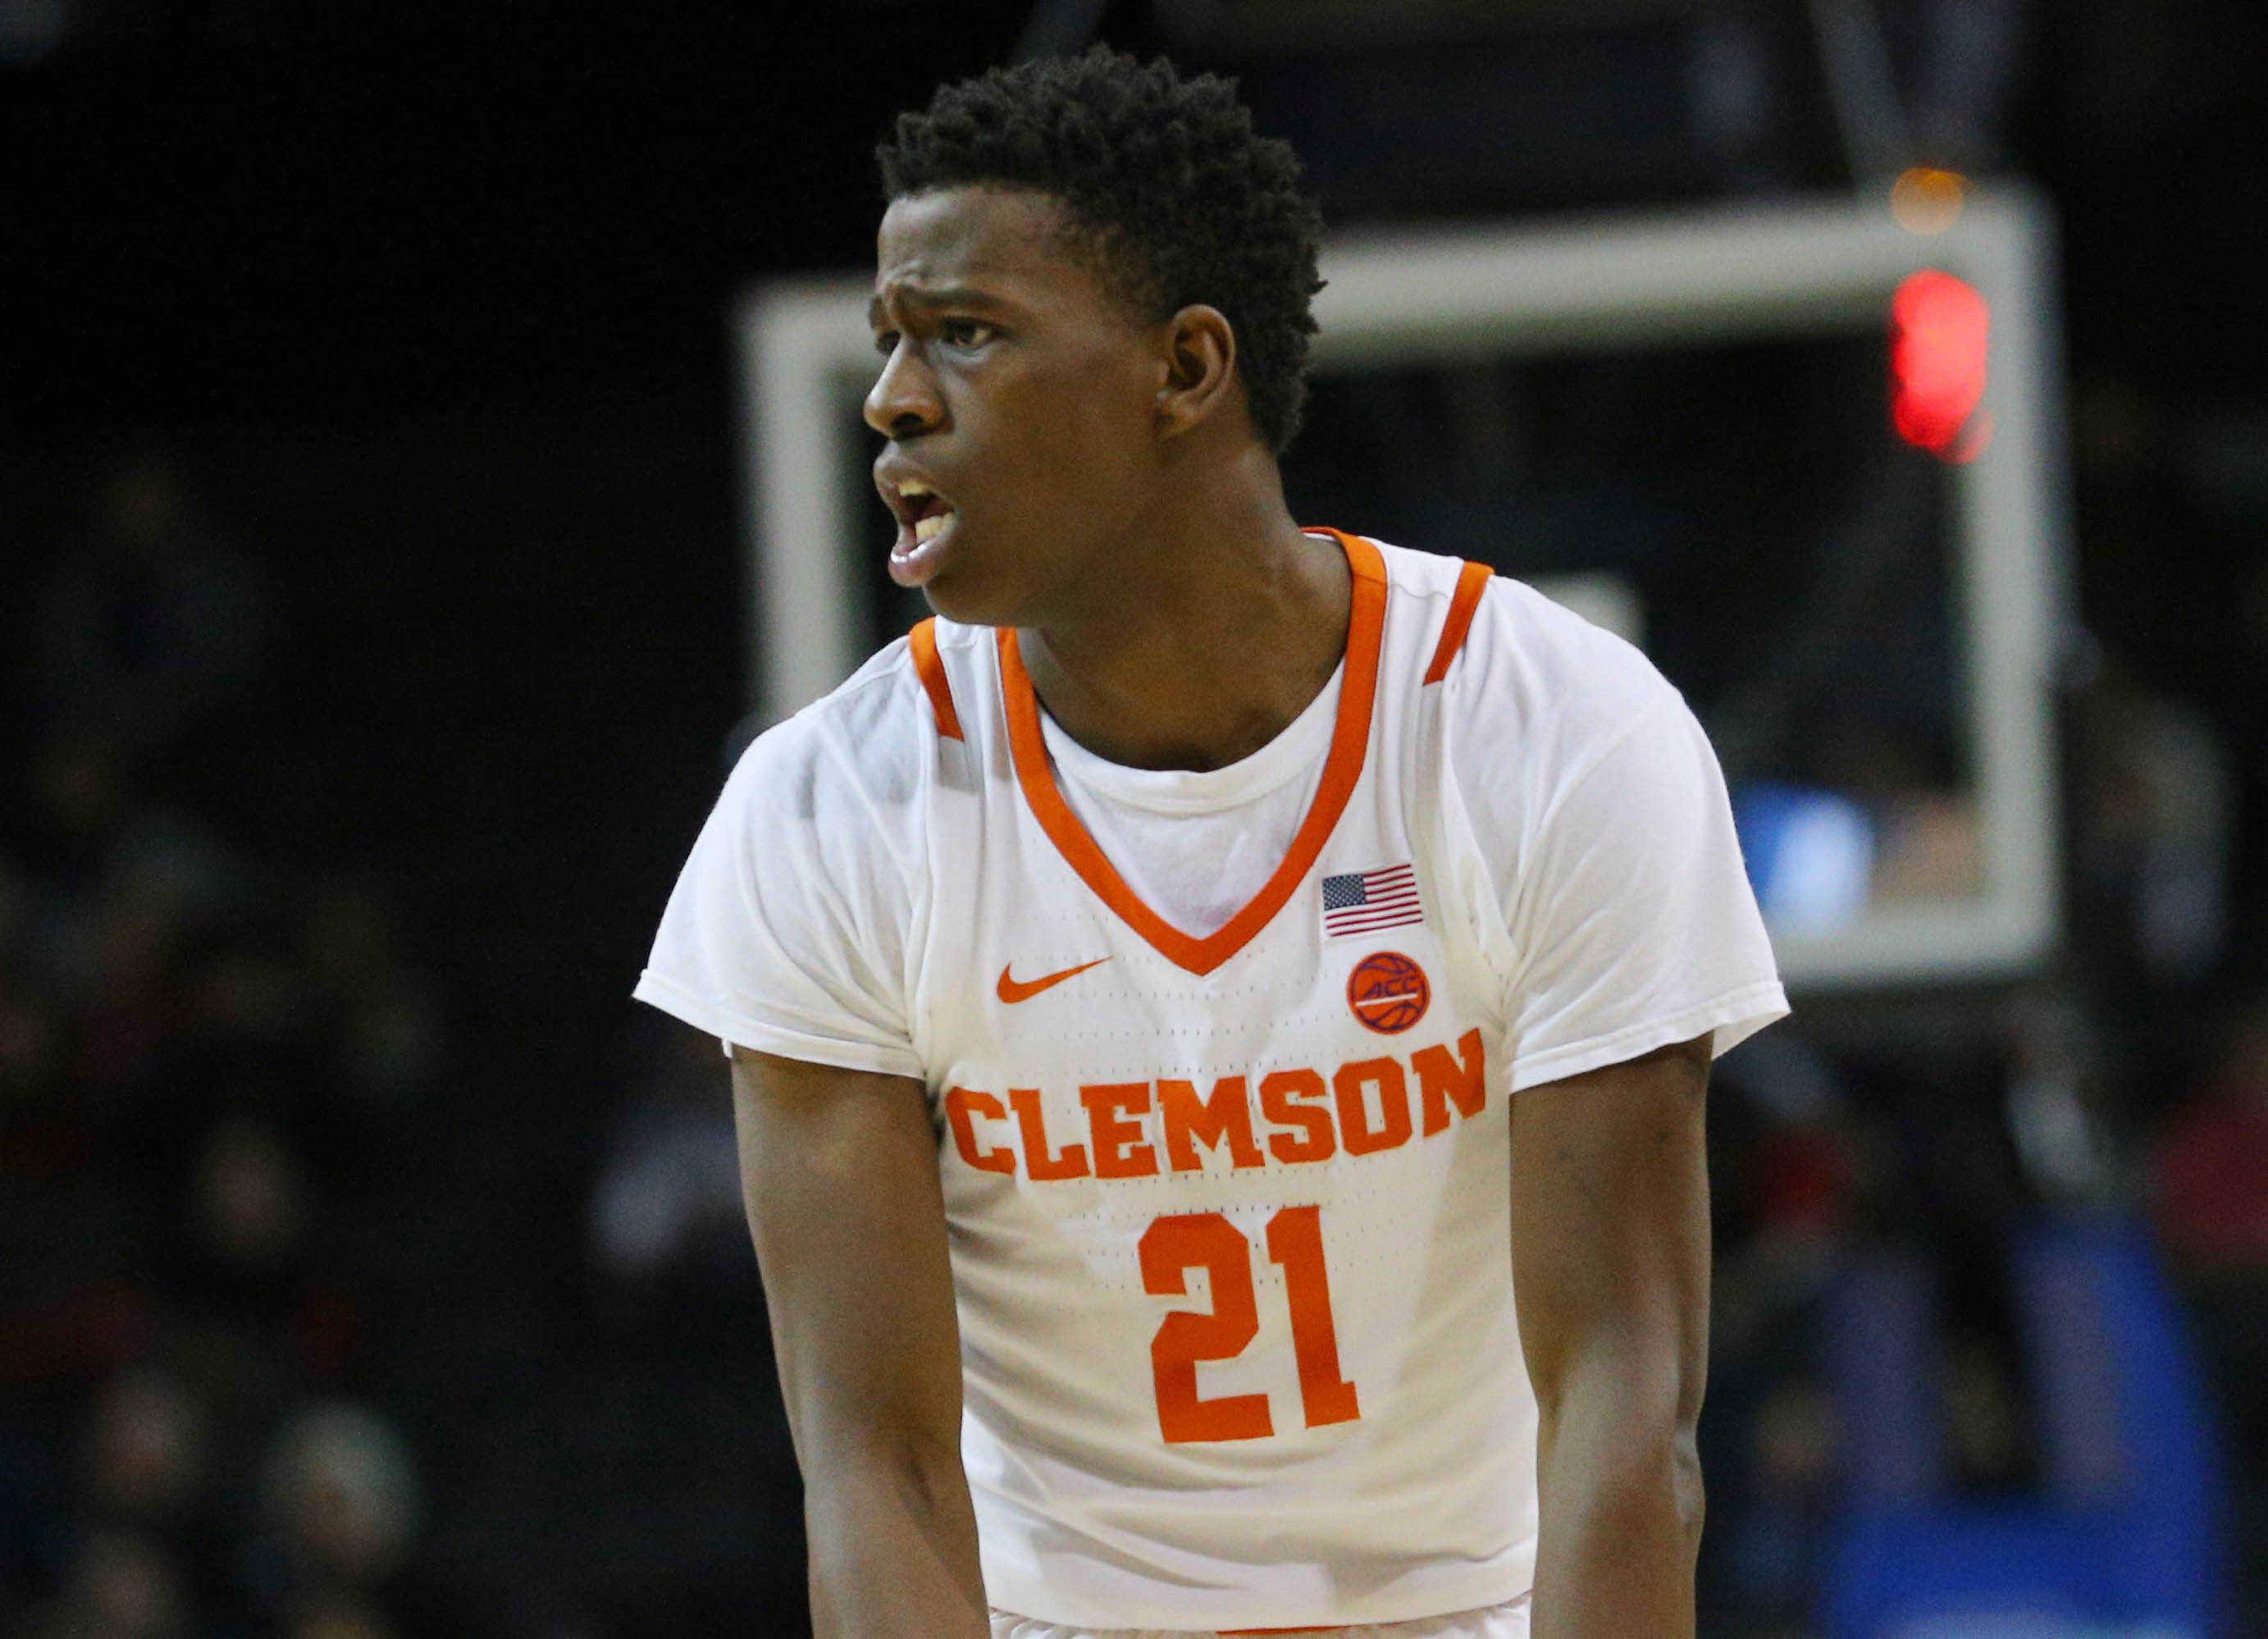 Anthony Oliver II Clemson Tigers Basketball Jersey